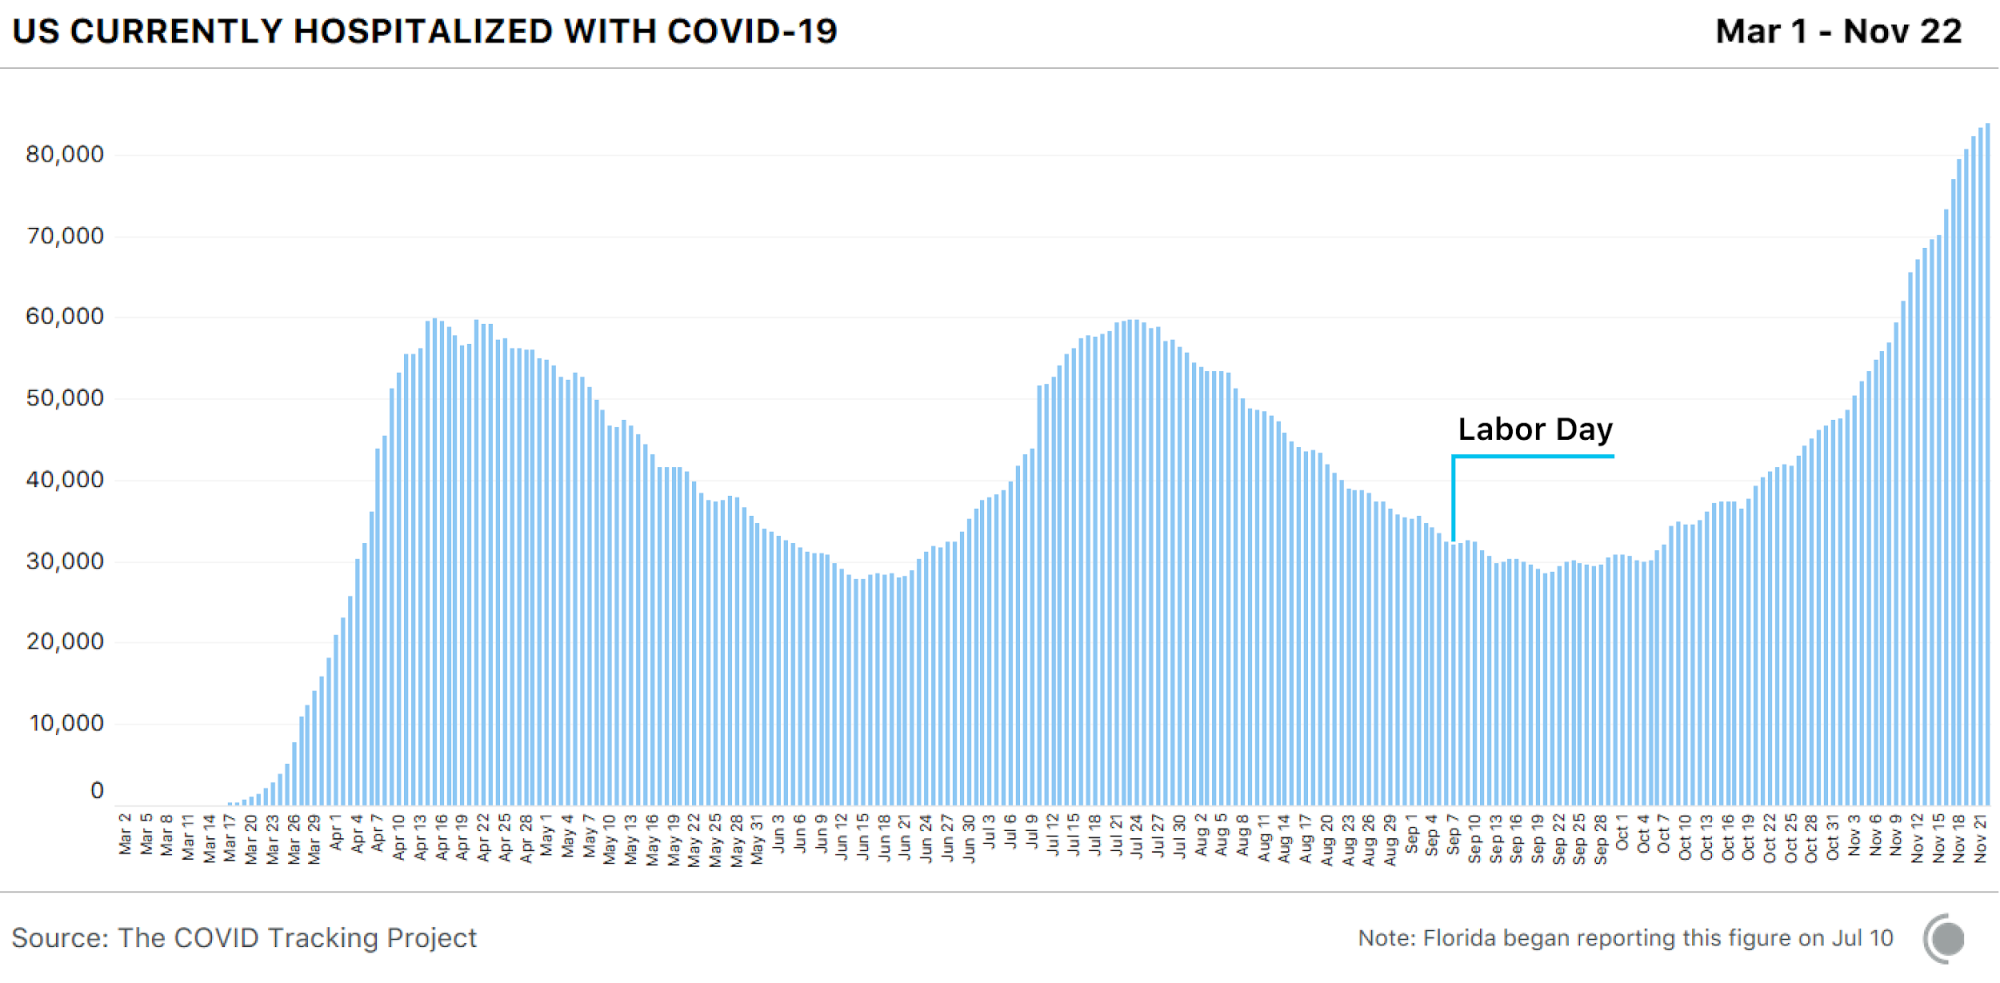 Bar chart showing US currently hospitalized from COVID-19. These are at record highs over the past week. The data was generally not affected by the Labor Day holiday.